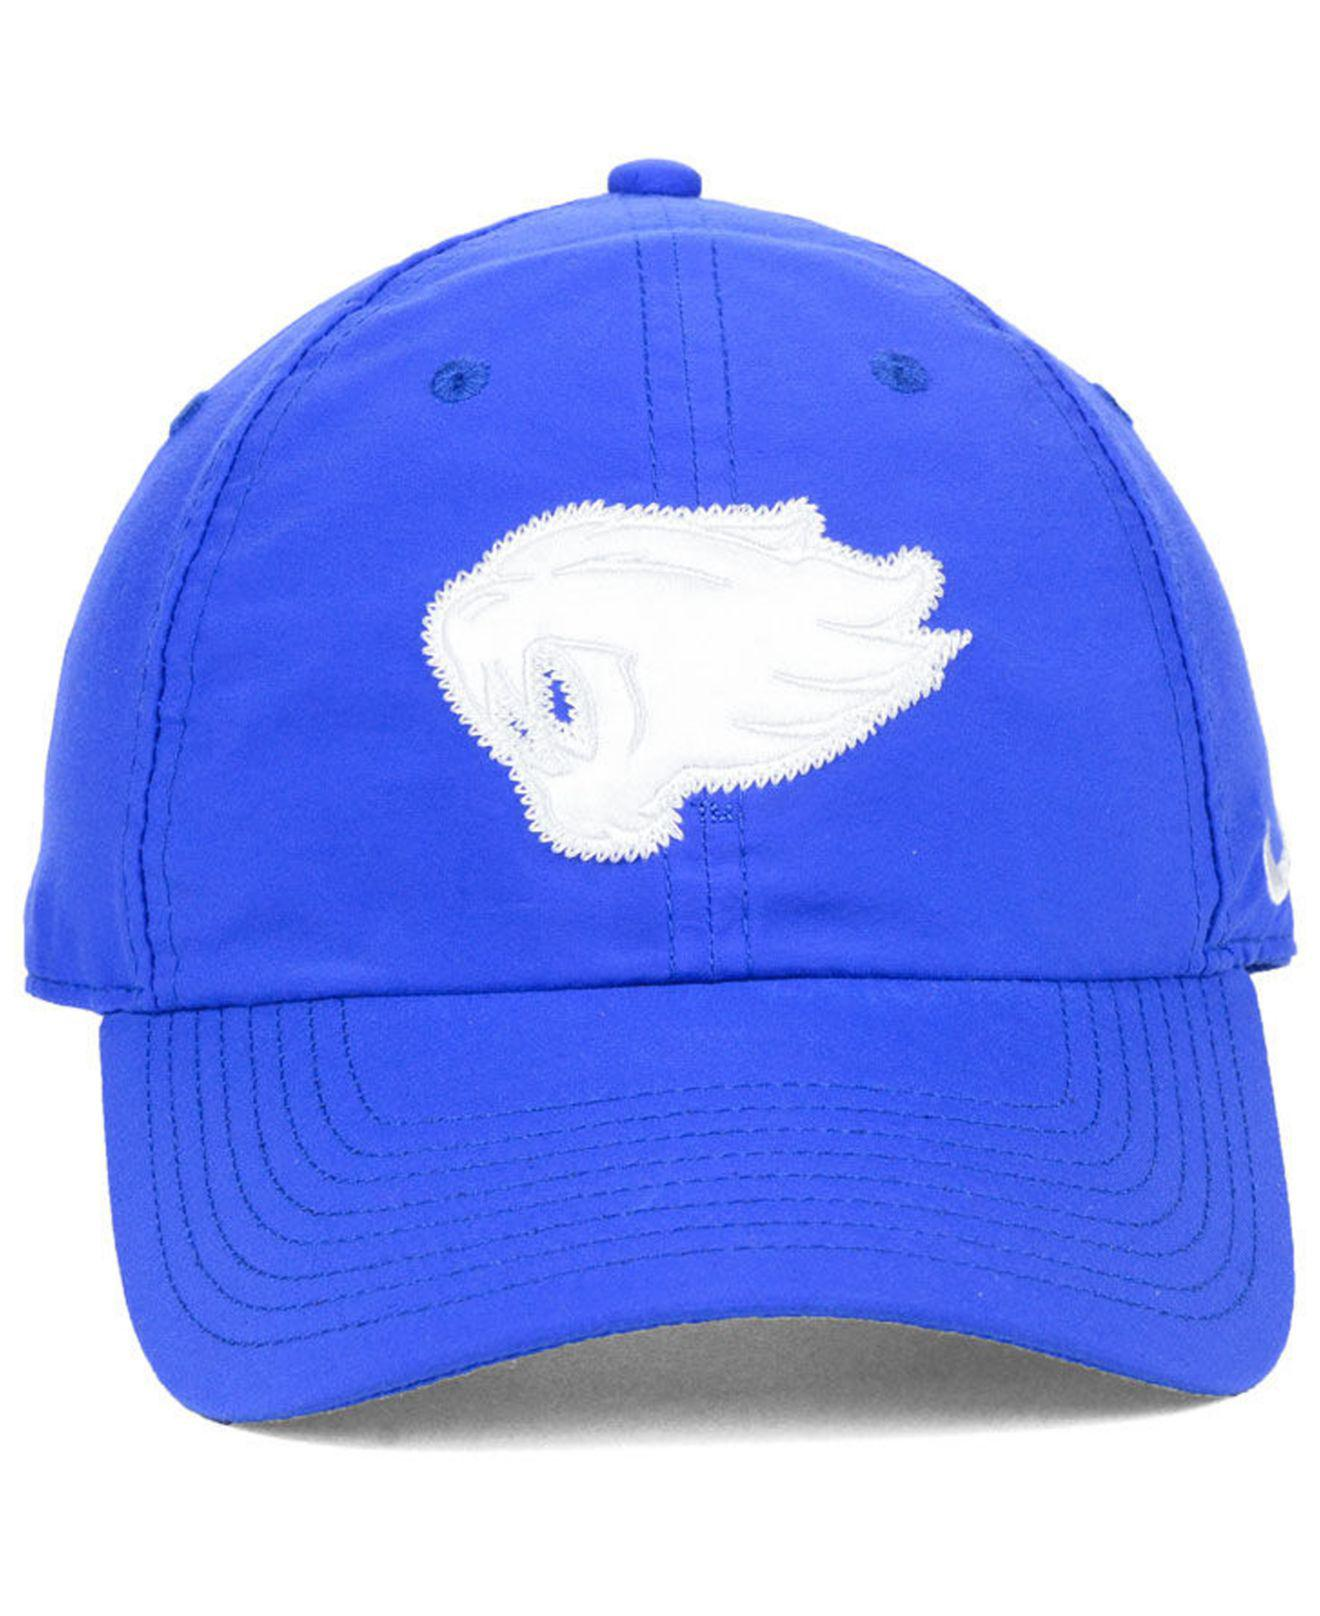 promo code 08ebe f36a7 Lyst - Nike Kentucky Wildcats Lon Adjustable Strapback Cap in Blue for Men